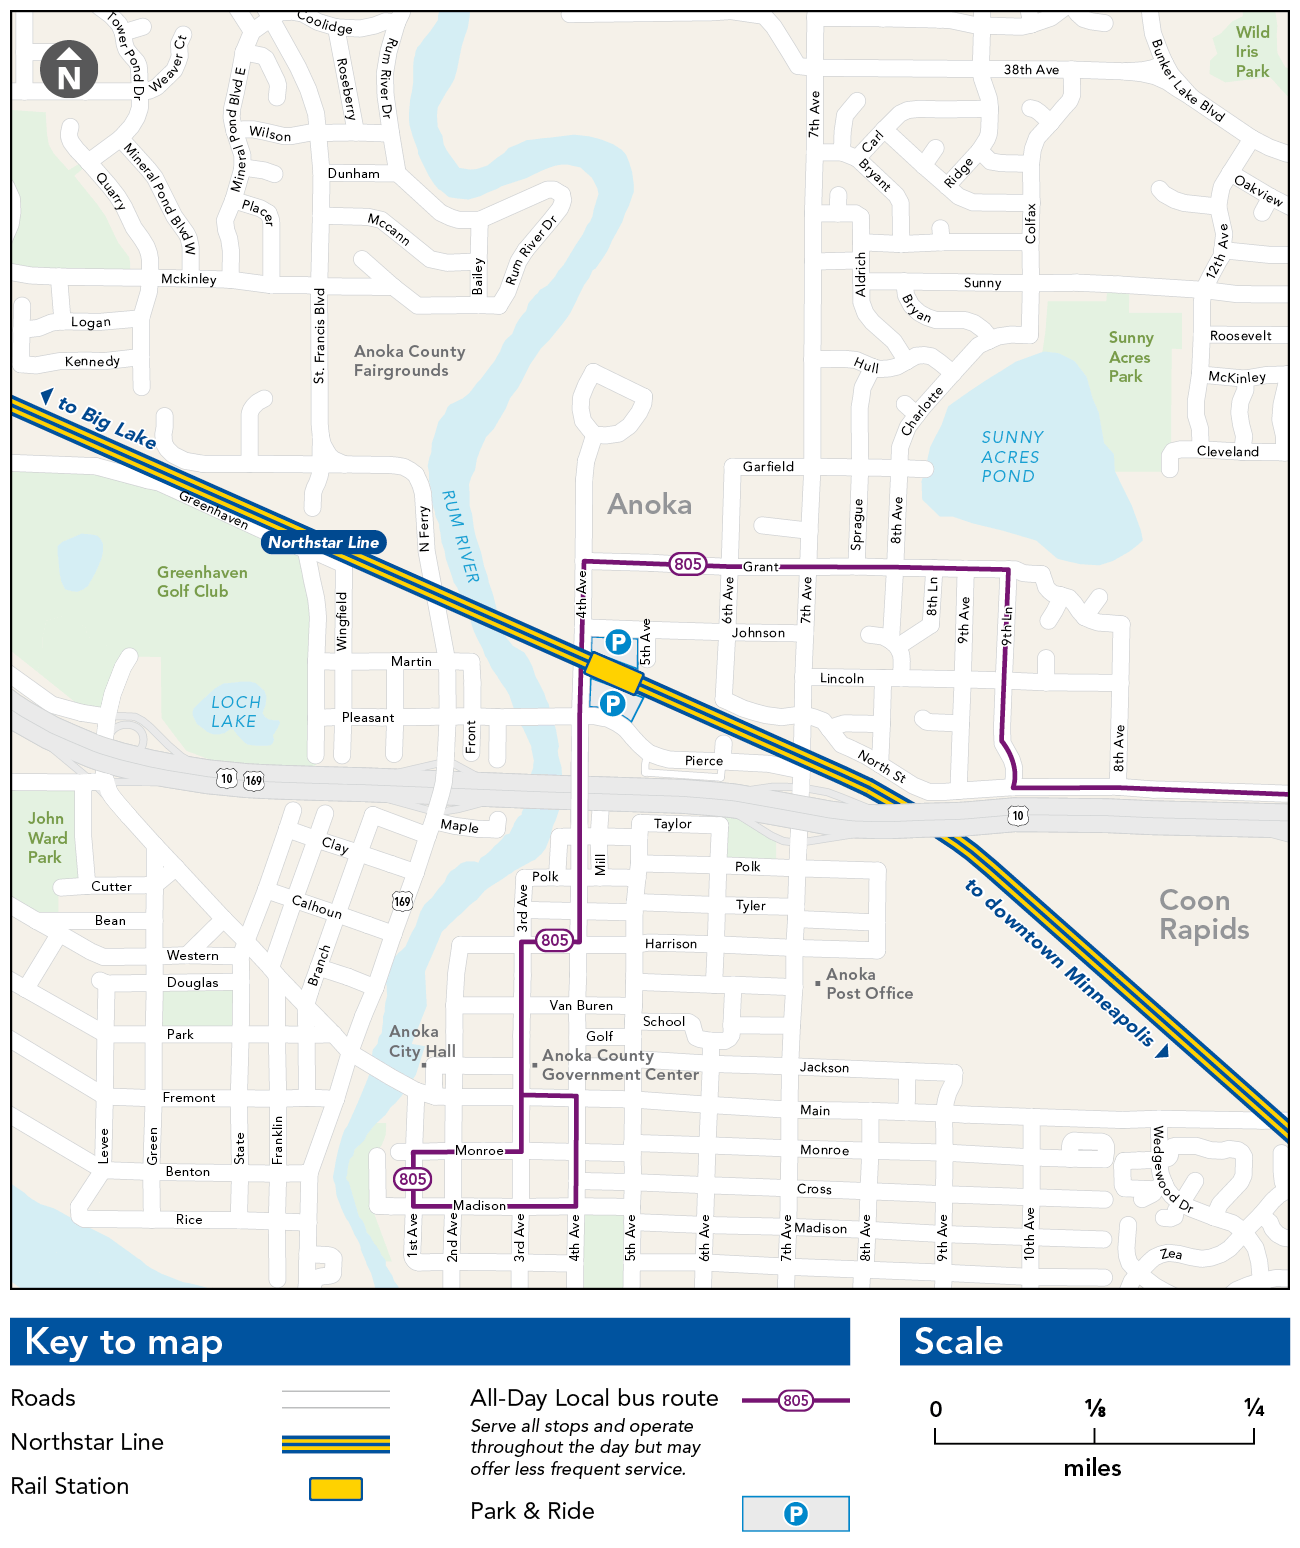 Anoka Station Map